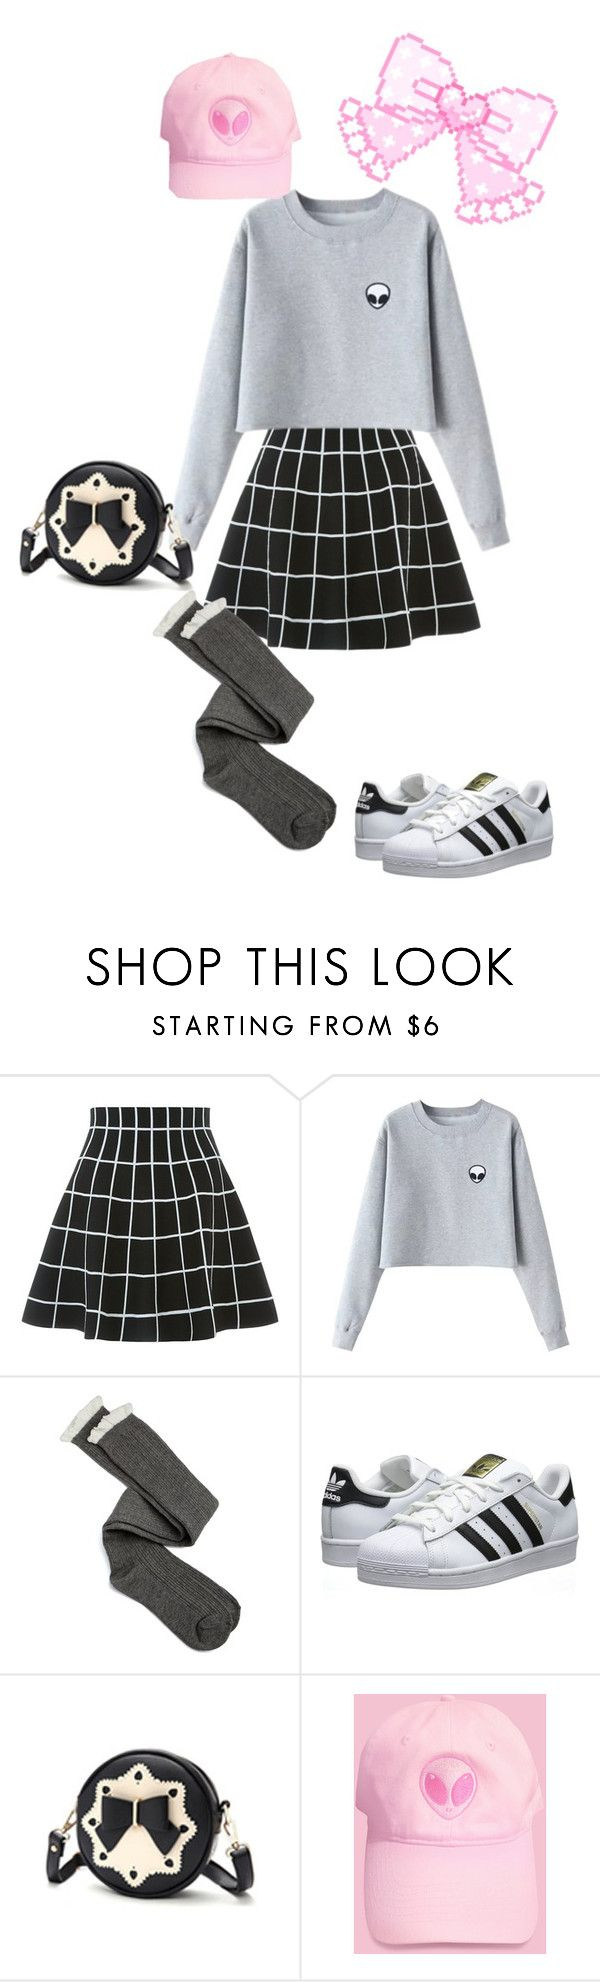 """""""Alien Music"""" by flowers-and-stars ❤ liked on Polyvore featuring Charlotte Russe and adidas Originals"""